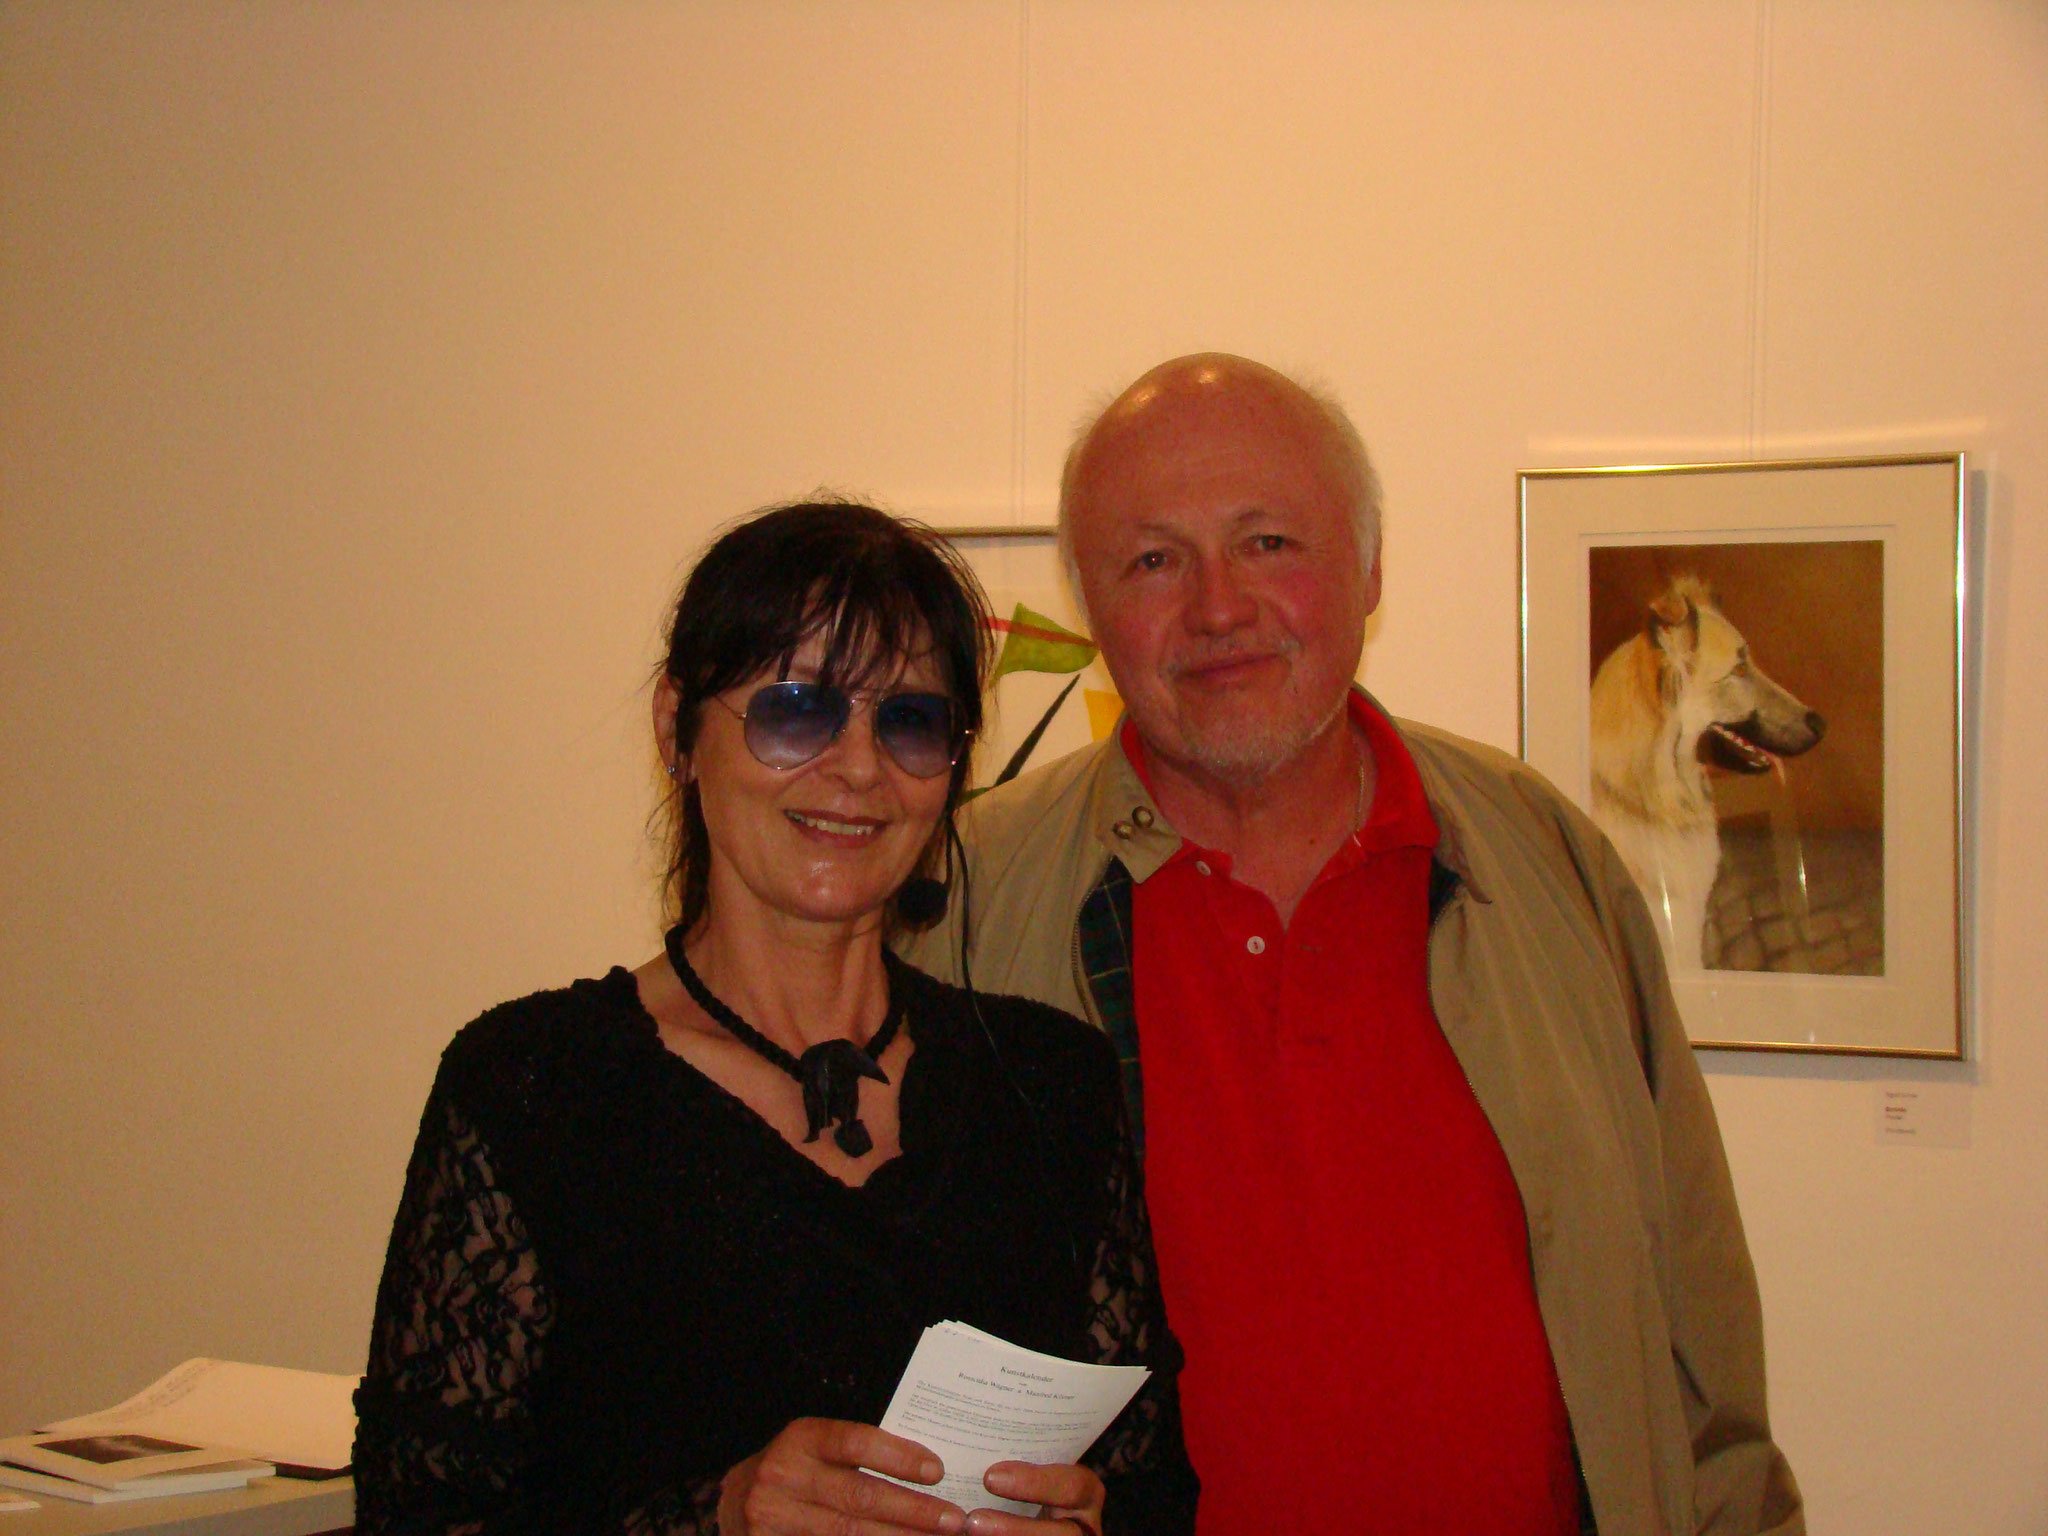 Roswitha Wagner & Peter Pohl